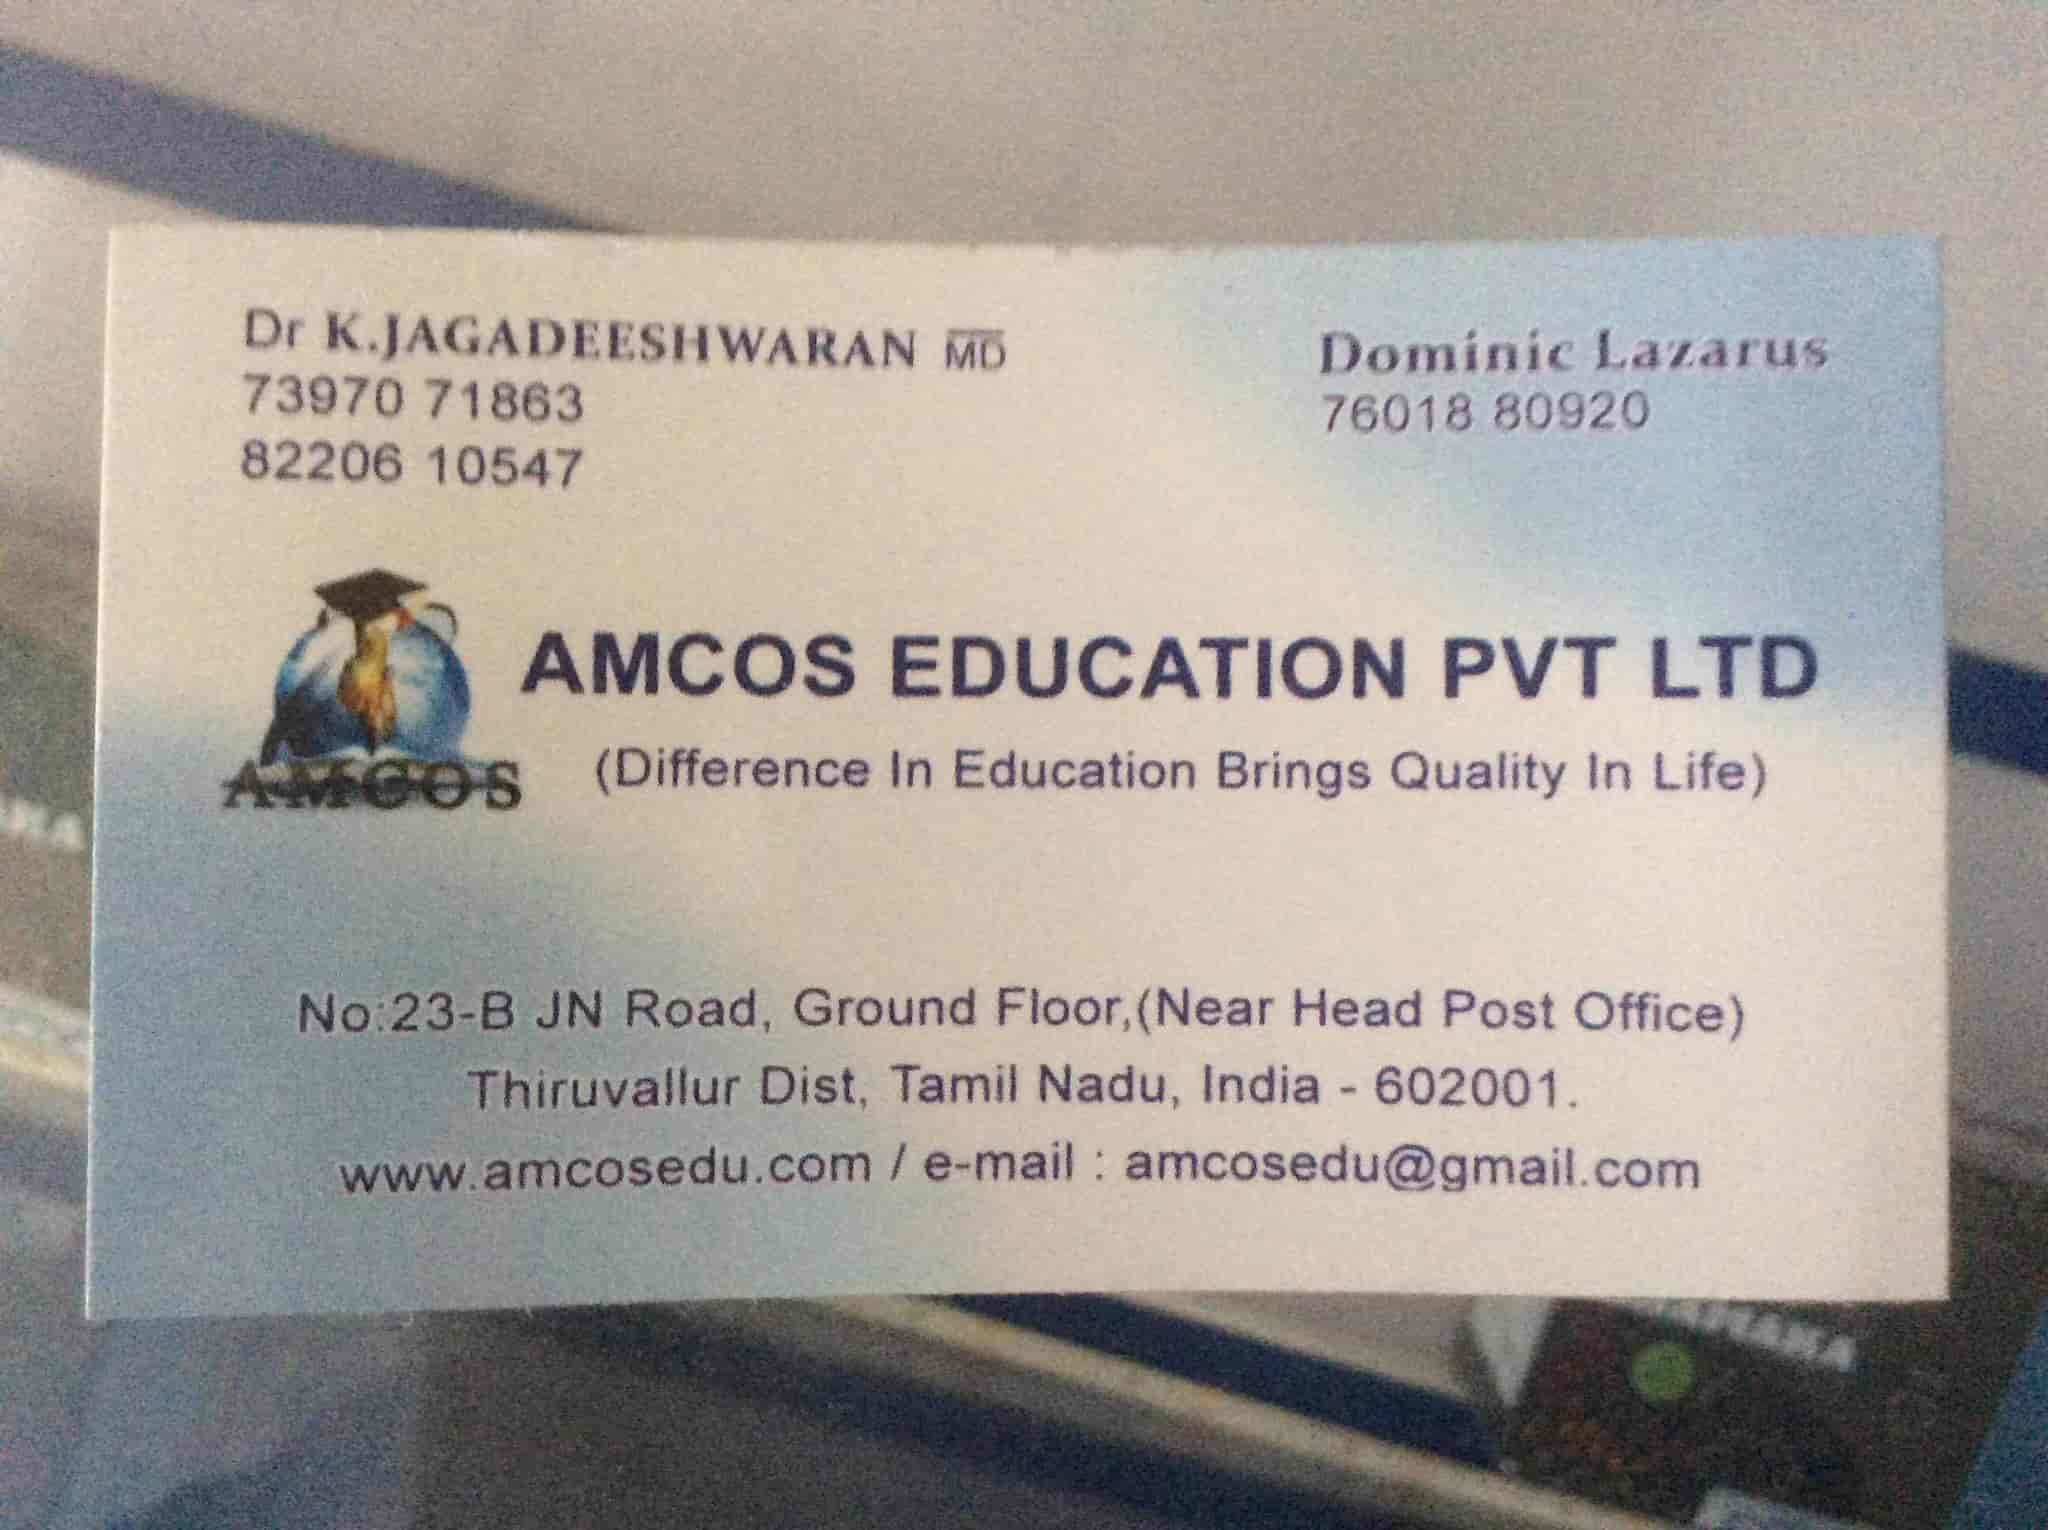 Amcos Education Pvt Ltd in Hopes, Coimbatore - Justdial